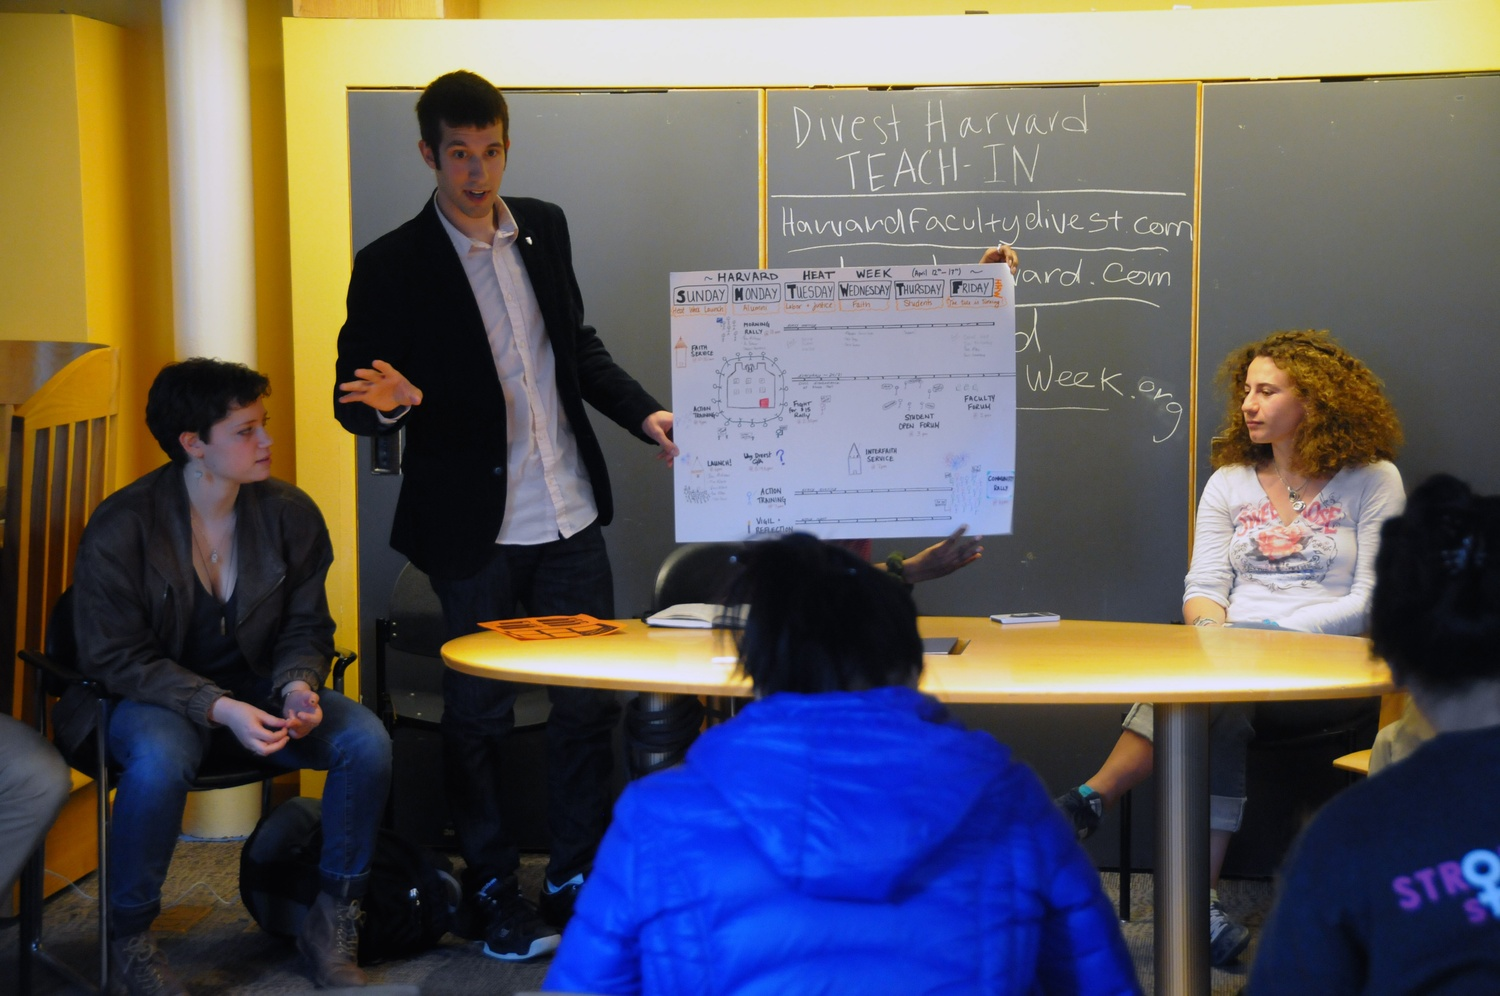 Members of Divest Harvard speak about the history of the group, which began with three students and has held active peaceful protests, fasts, and sit-ins since its conception three years ago in Ticknor Lounge on Monday evening.